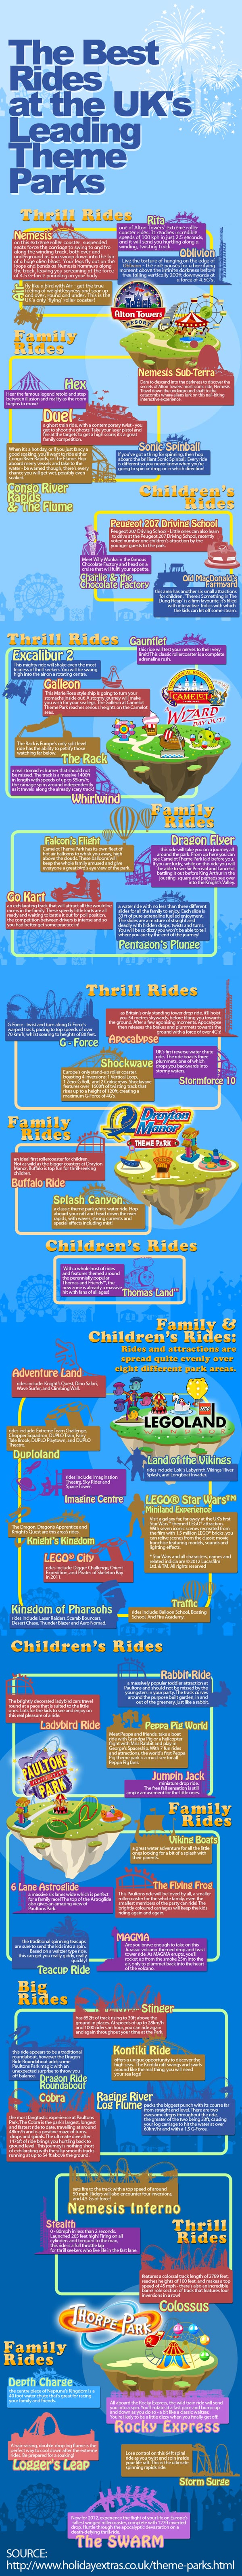 Infographic: The best rides at the UK's leading theme parks